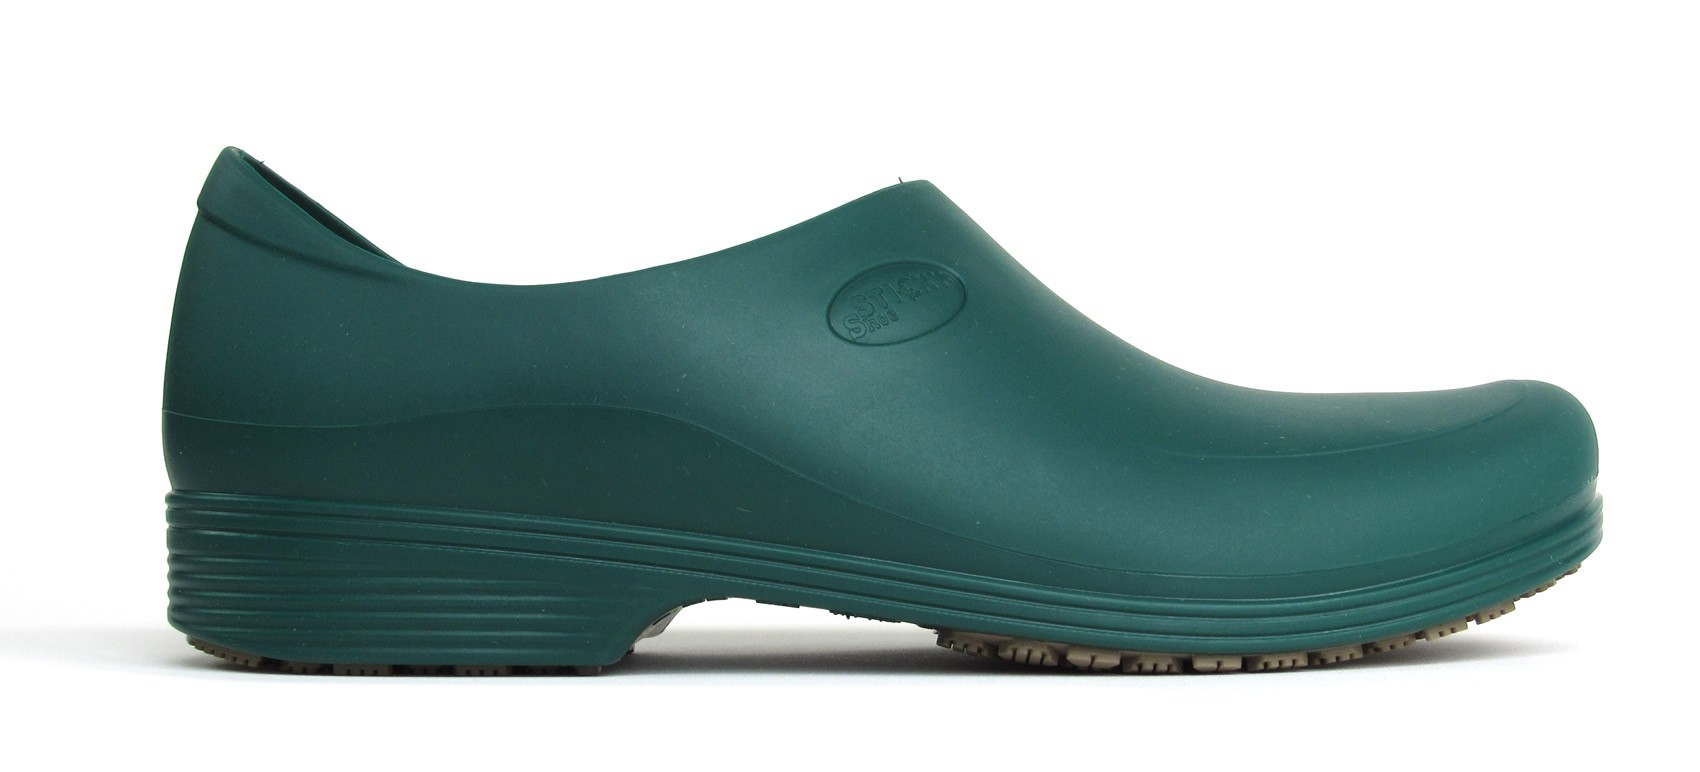 Man Non-Slip StickyPRO Shoes - Green